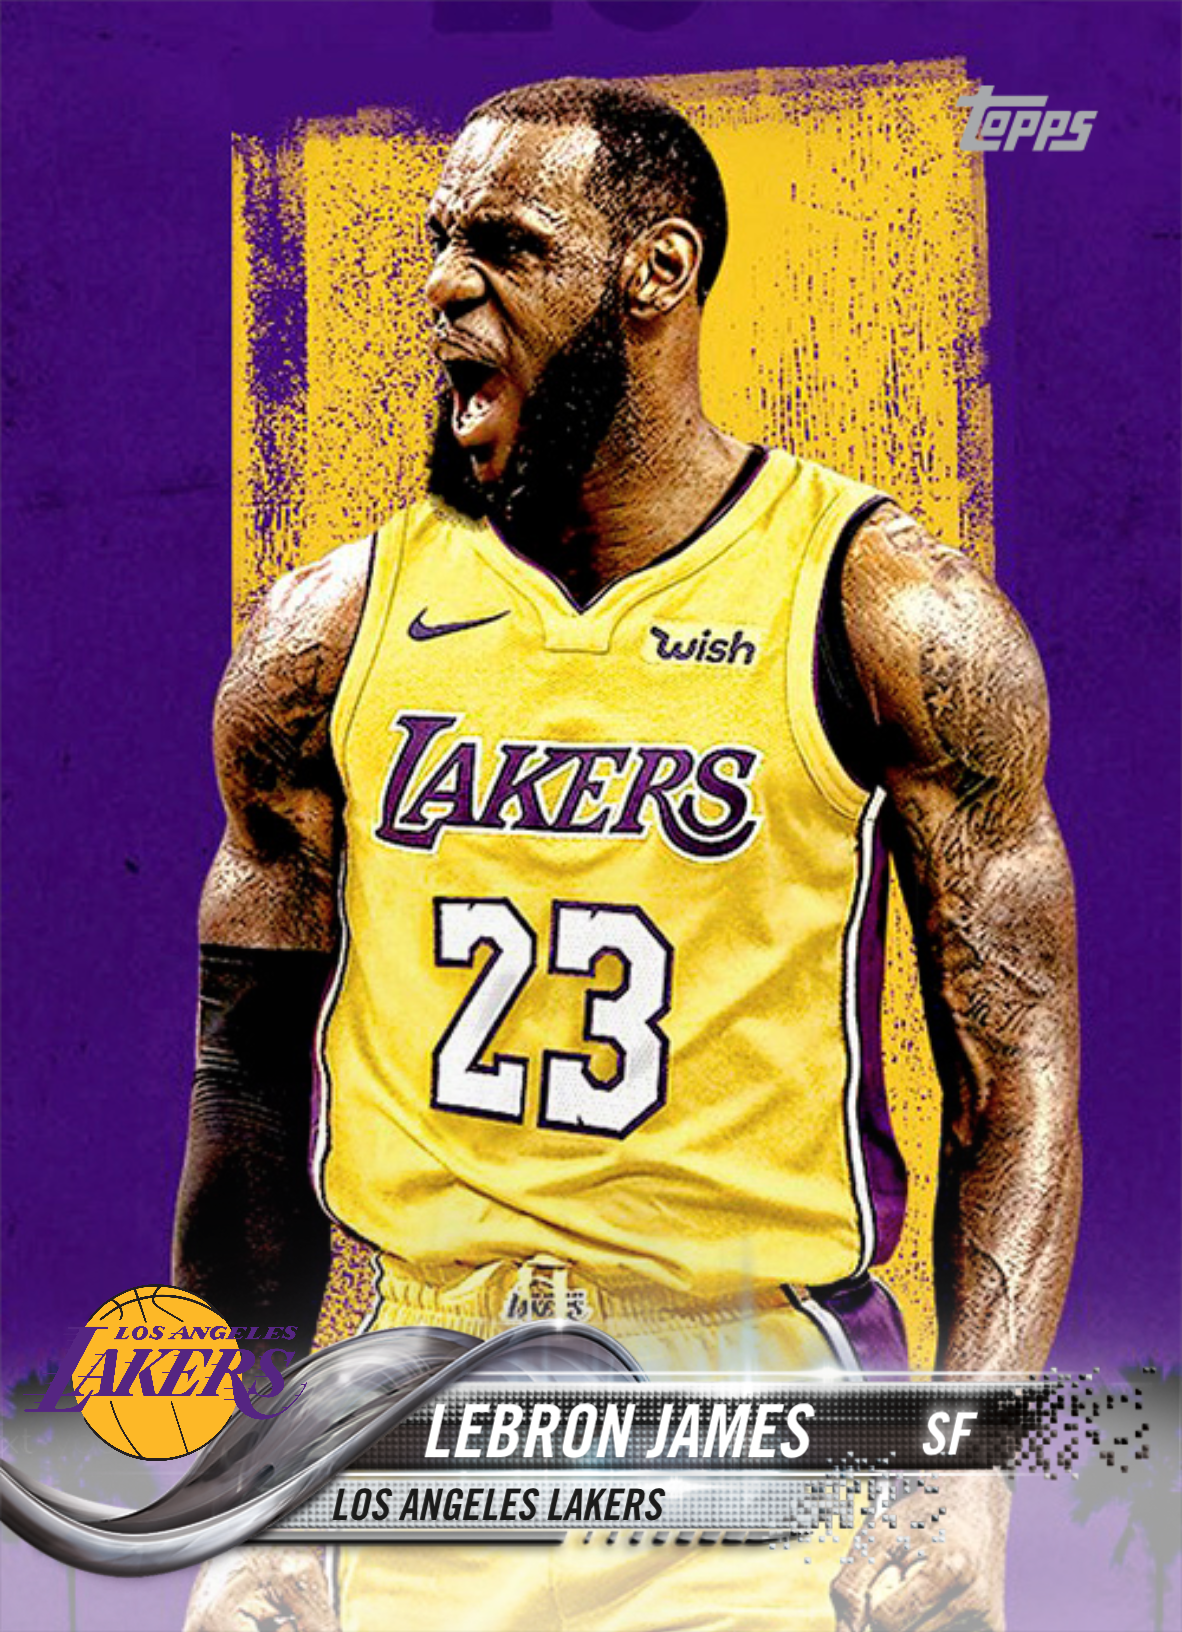 a062d5533d7 LeBron James Lakers #BasketballMoves | Lebron James | Basketball ...